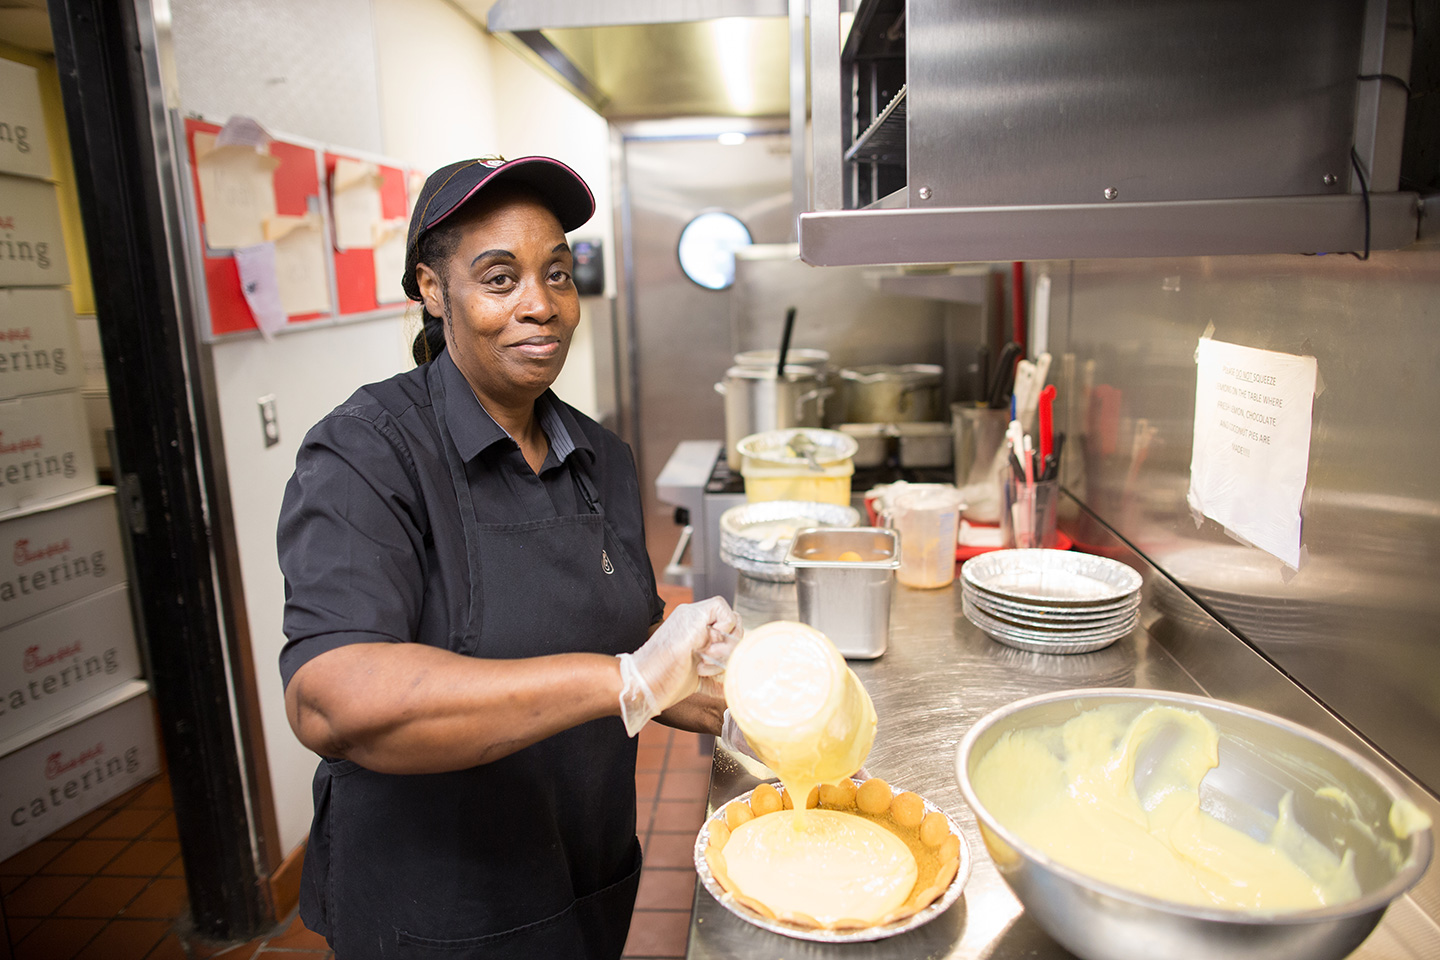 Ms. Jackie Banks making a Lemon Meringue Pie